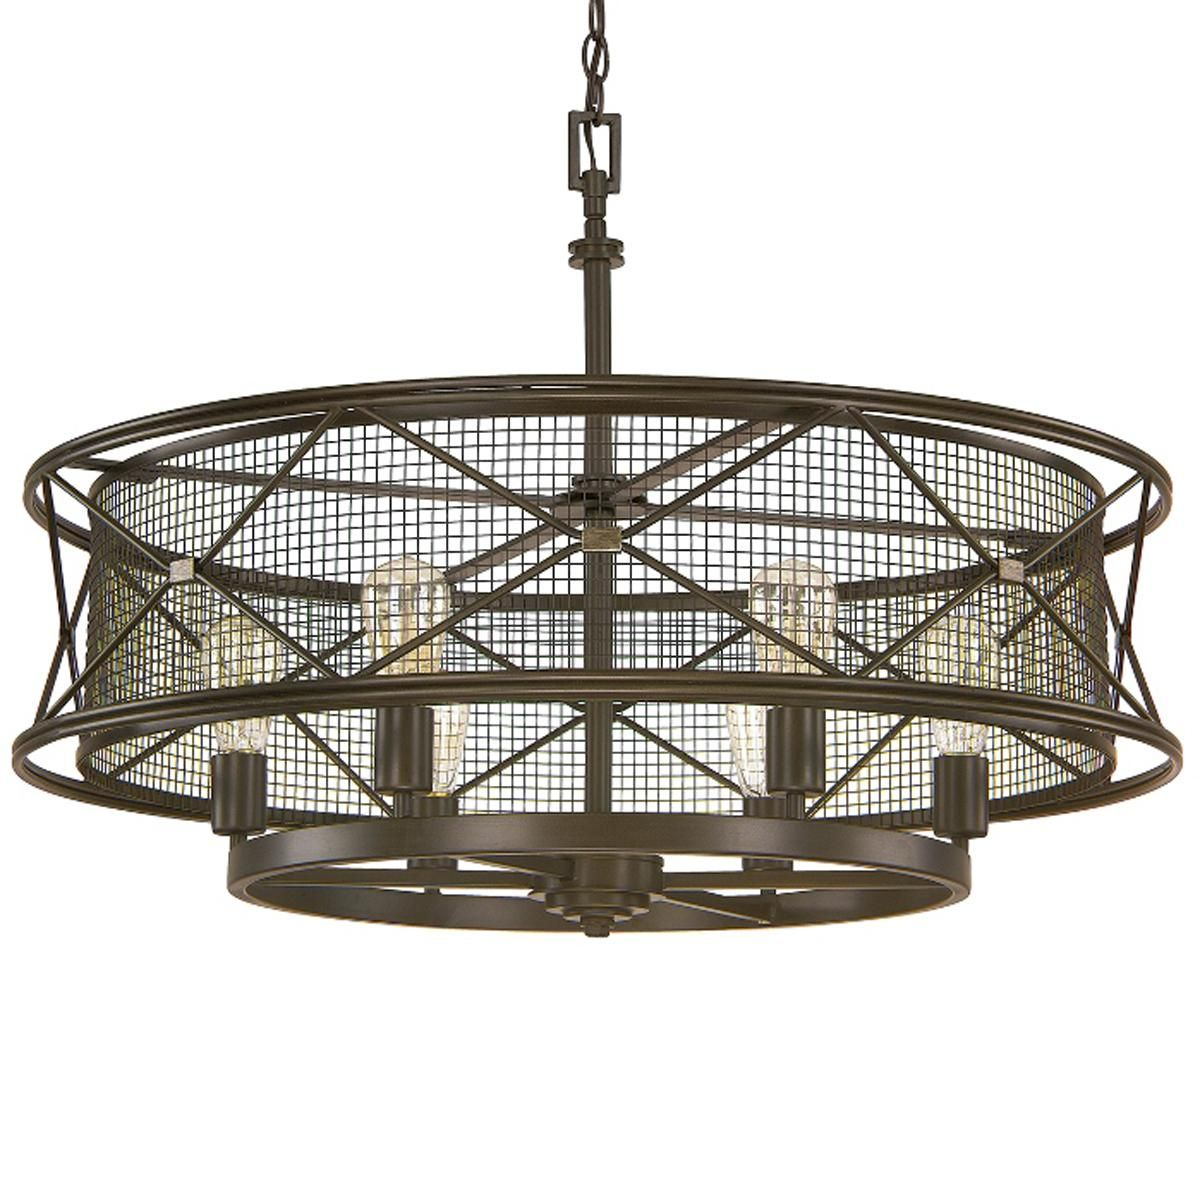 X cage urban chandelier 6 light chandeliers urban and lights x cage urban 6 light chandelier arubaitofo Images